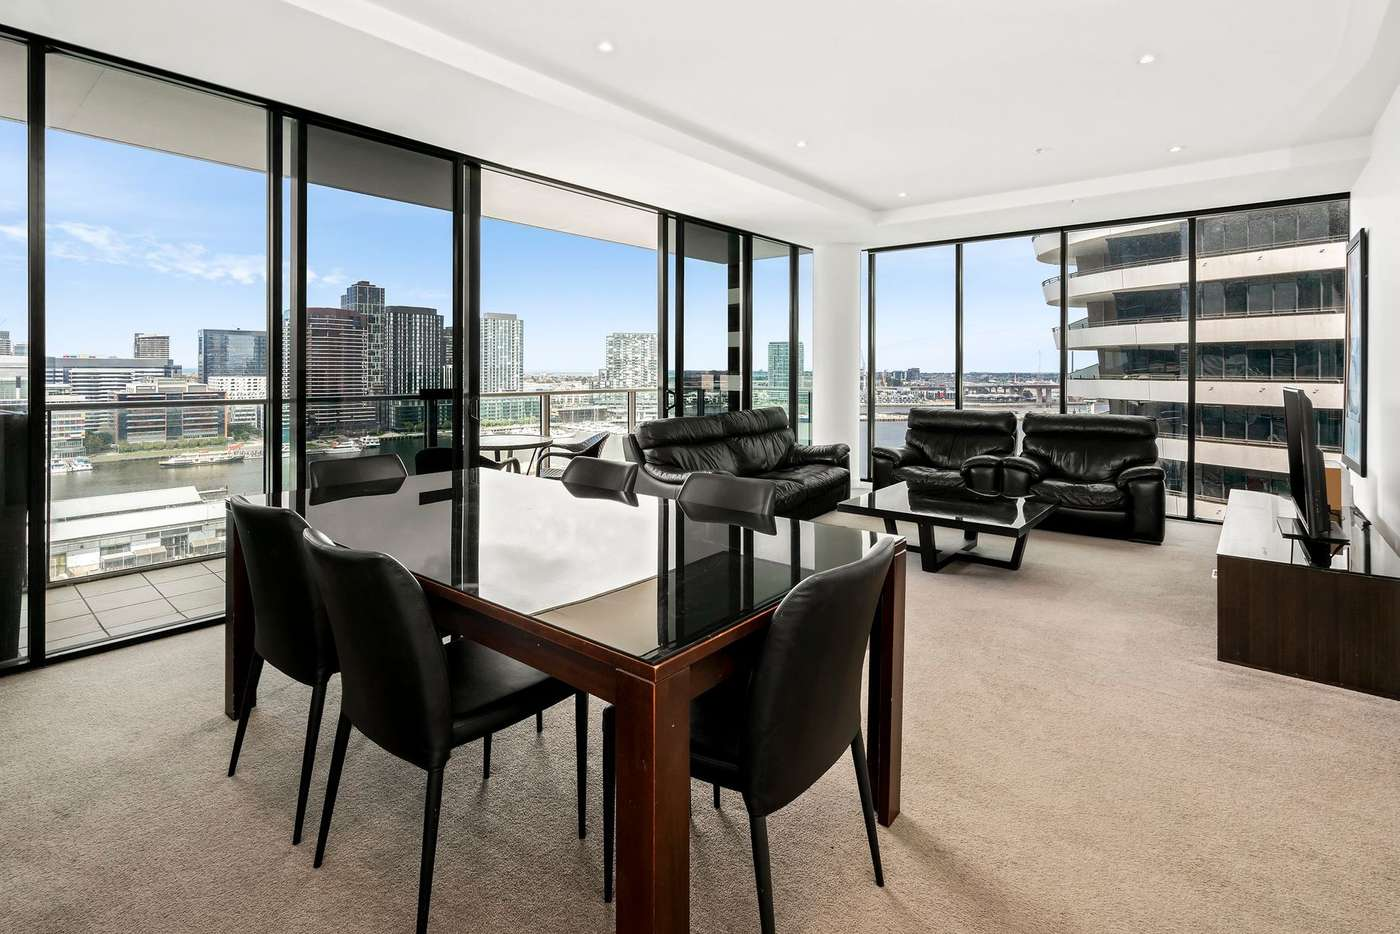 Main view of Homely apartment listing, 1702/5 Caravel Lane, Docklands VIC 3008